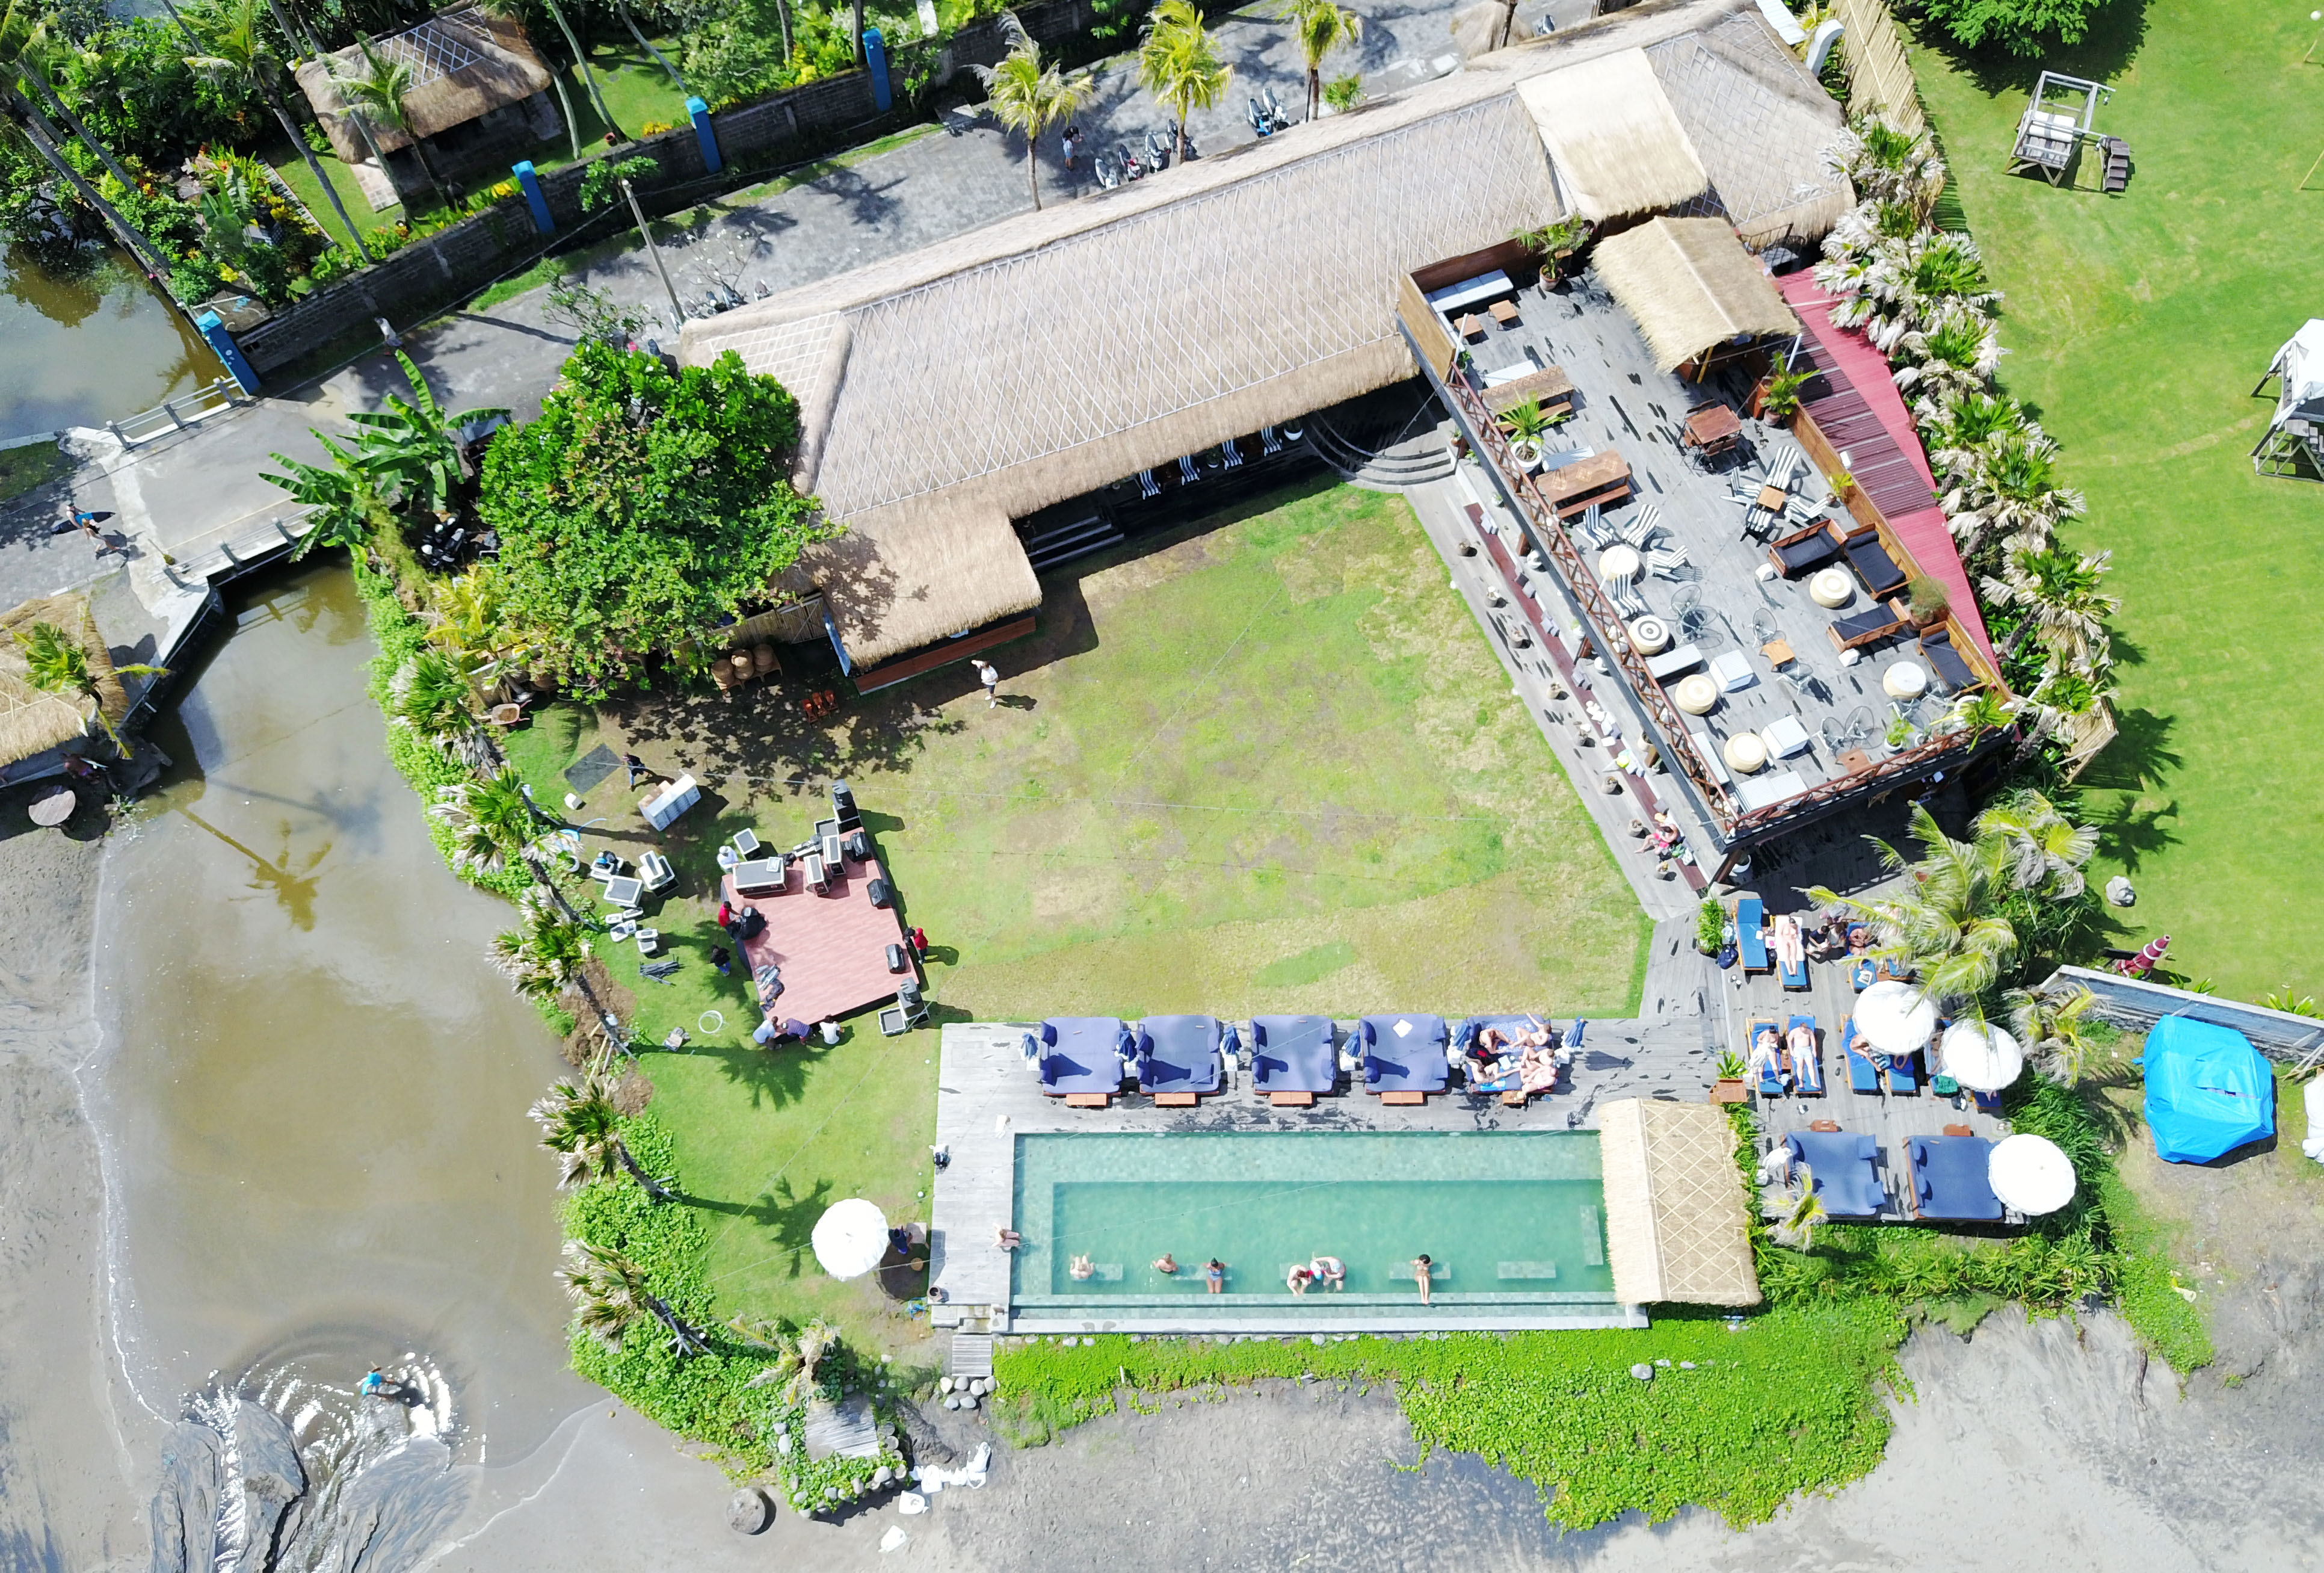 The Lawn Aerial View